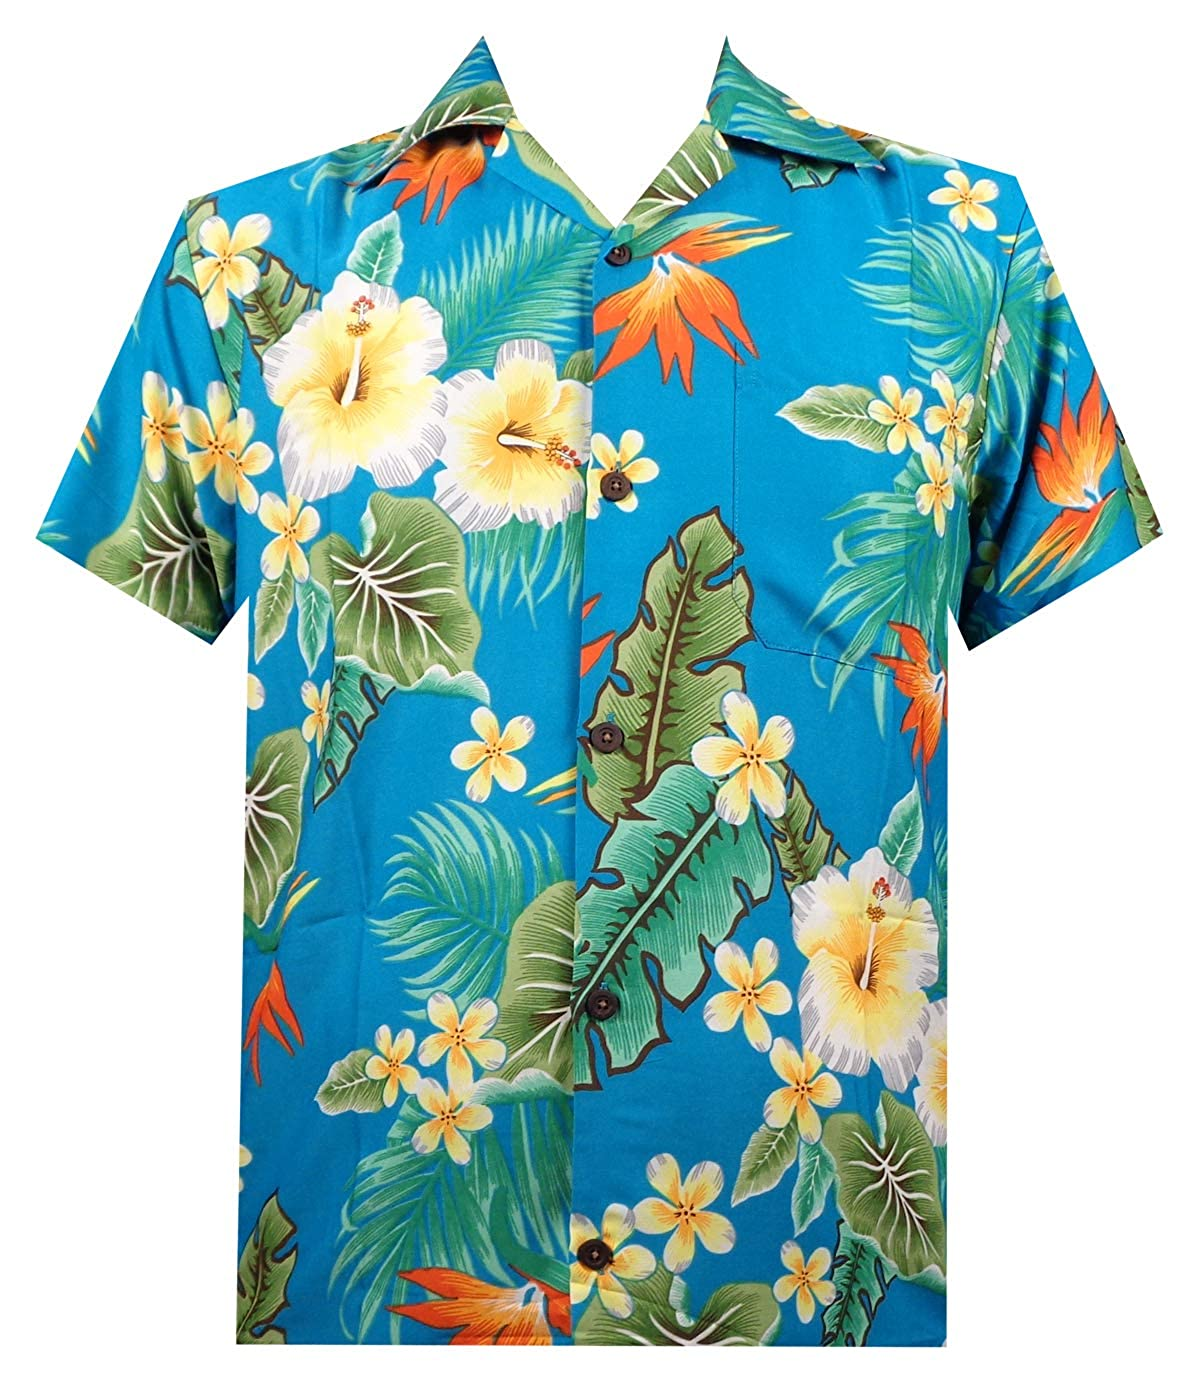 1940s Mens Clothing Hawaiian Shirt Mens Flower Leaf Beach Aloha Party Casual Holiday Short Sleeve £13.12 AT vintagedancer.com